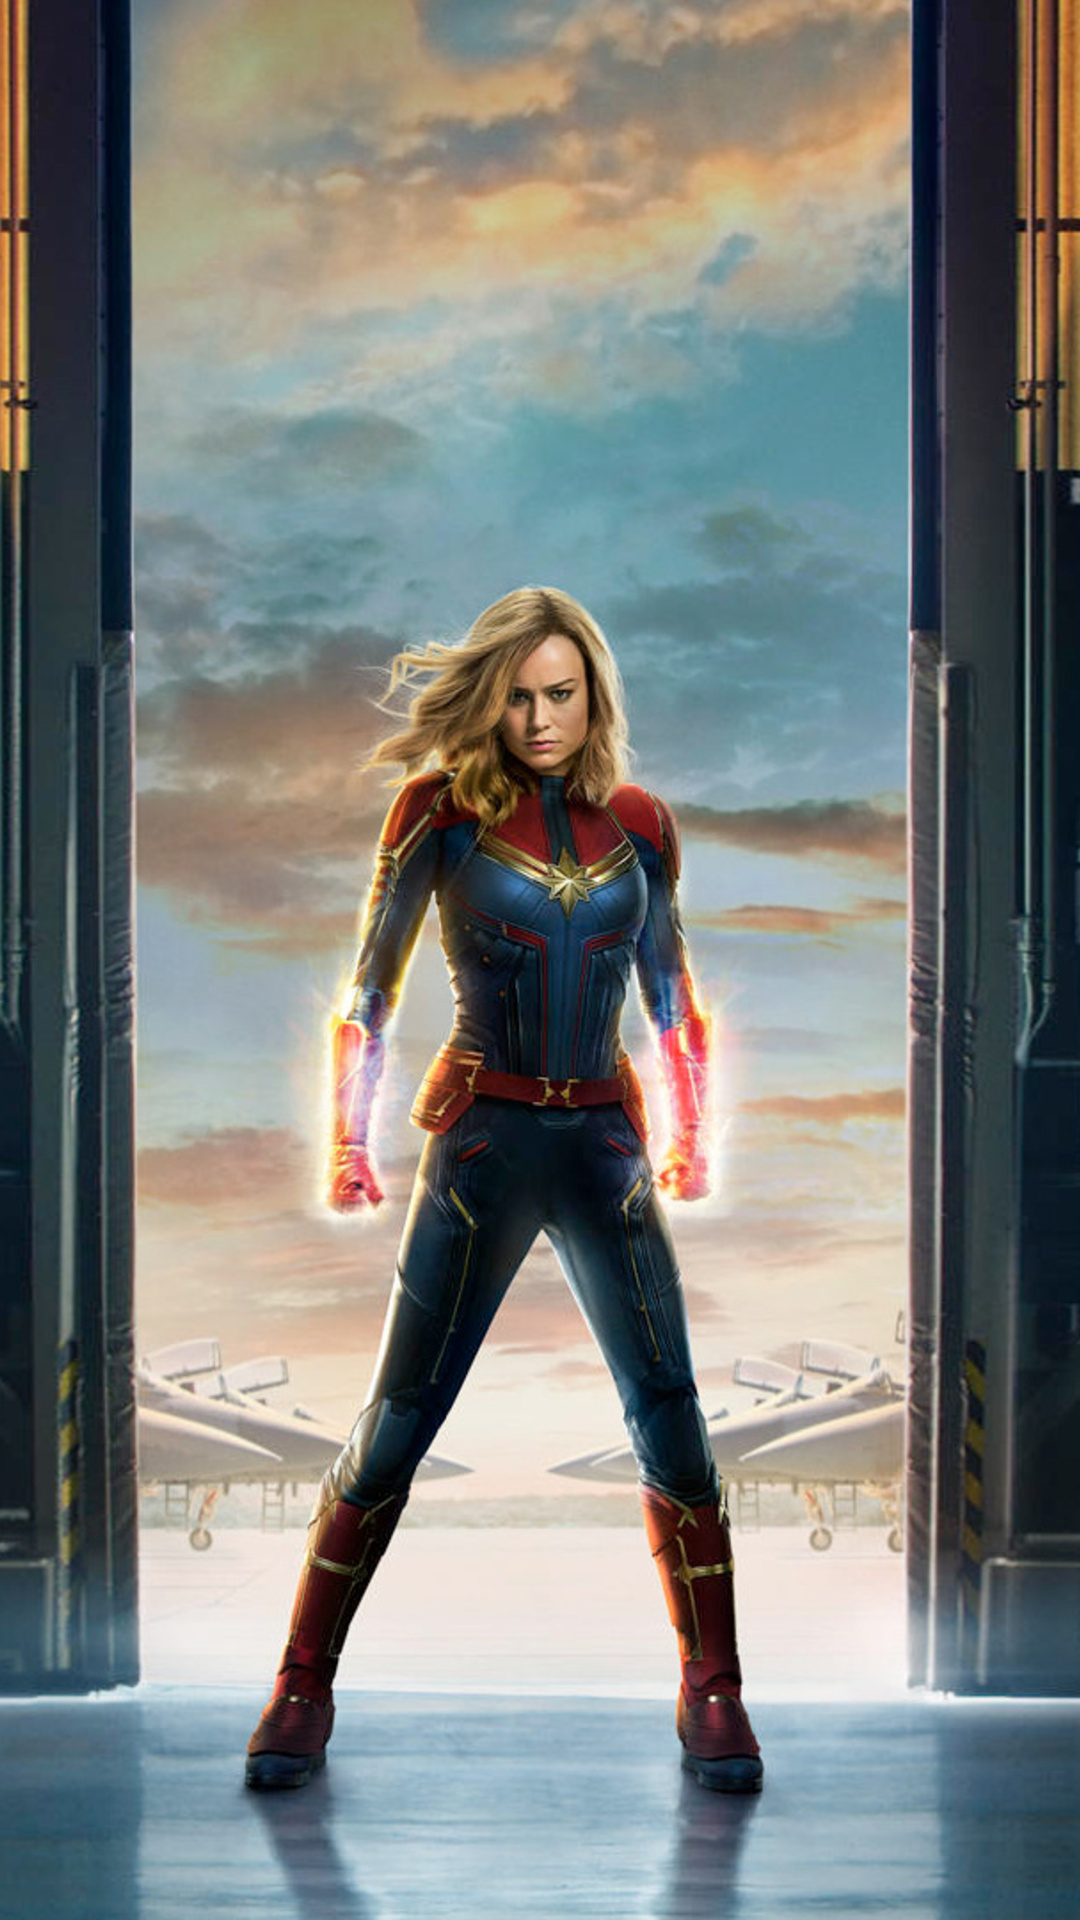 1080x1920 Captain Marvel Movie 2019 Offical Poster Iphone ...